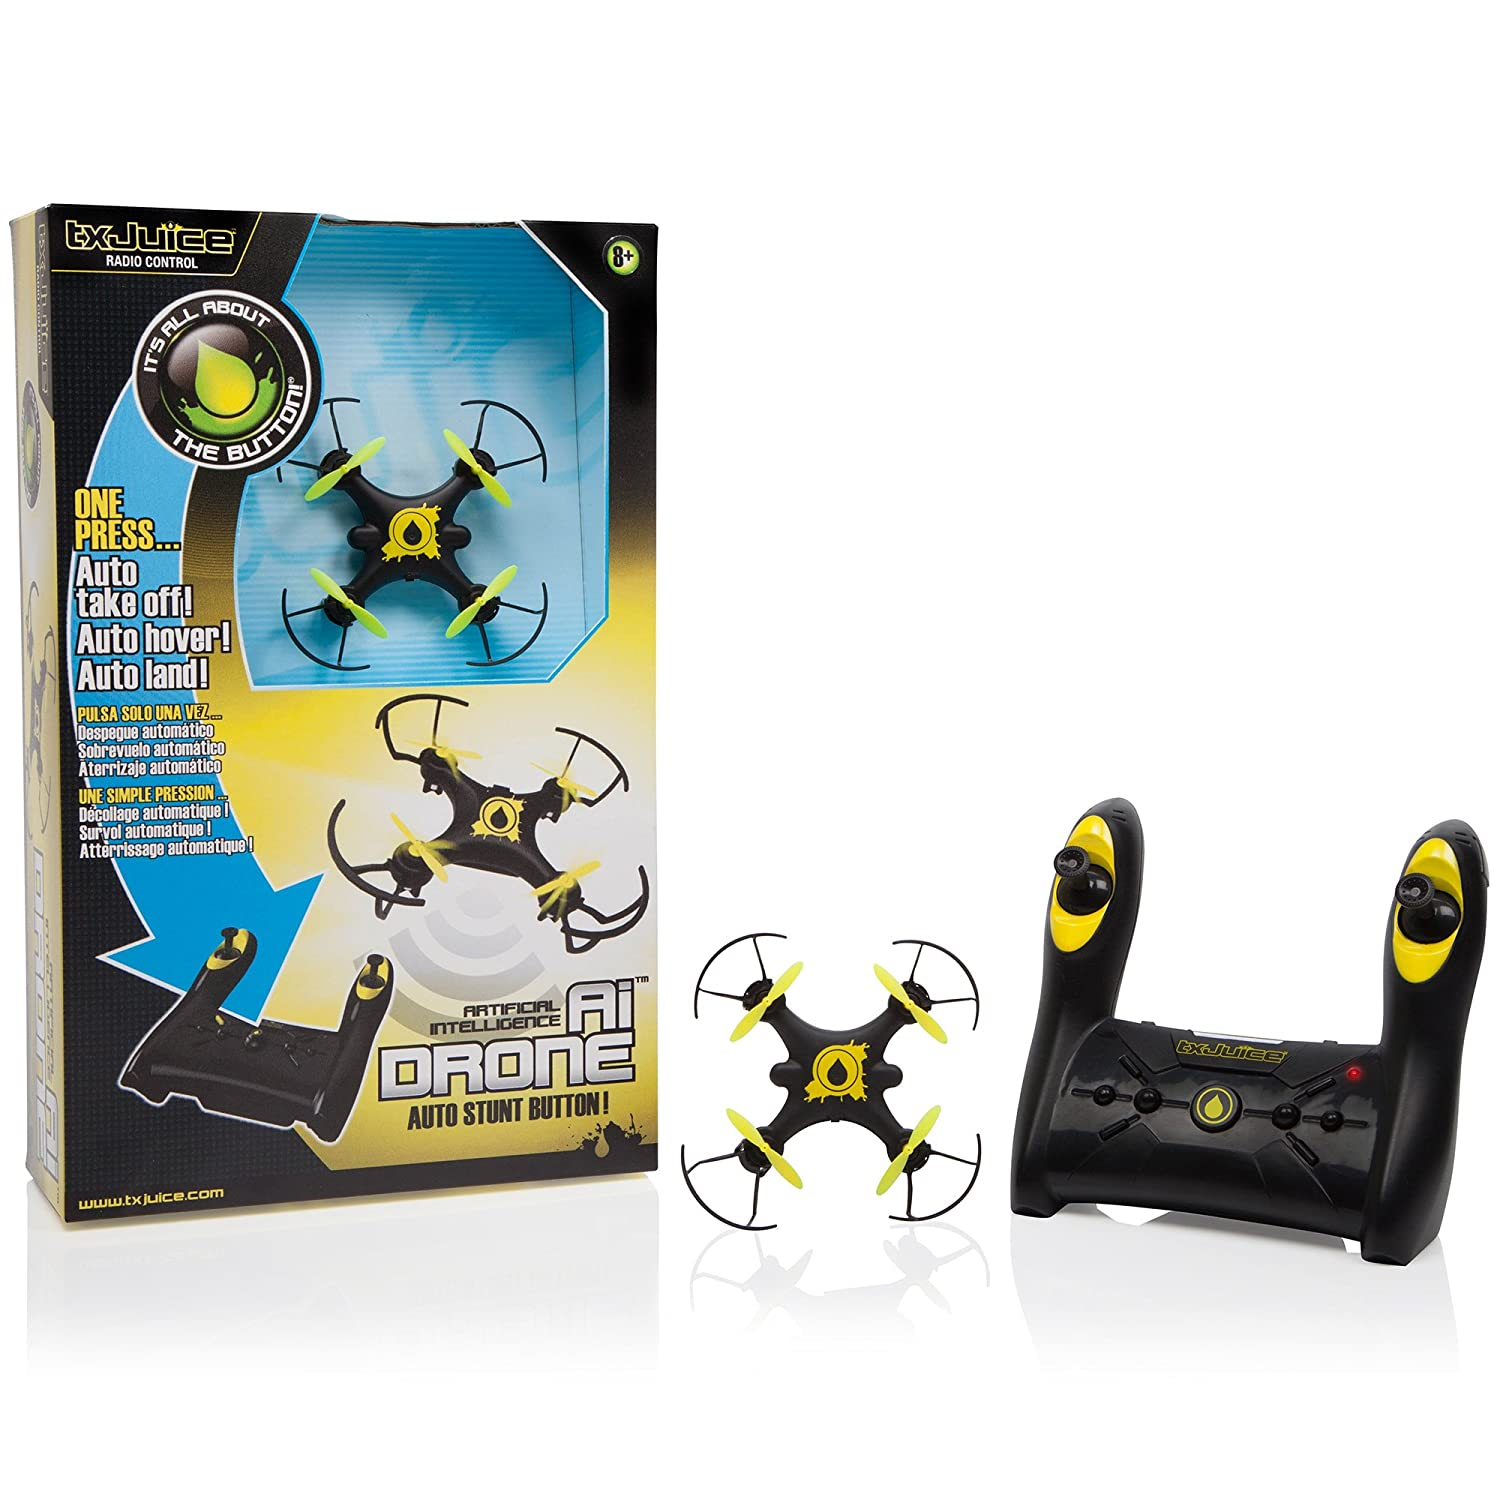 TX Juice Ai Drone - First RC Quadcopter with Auto Take-off, Hover ...